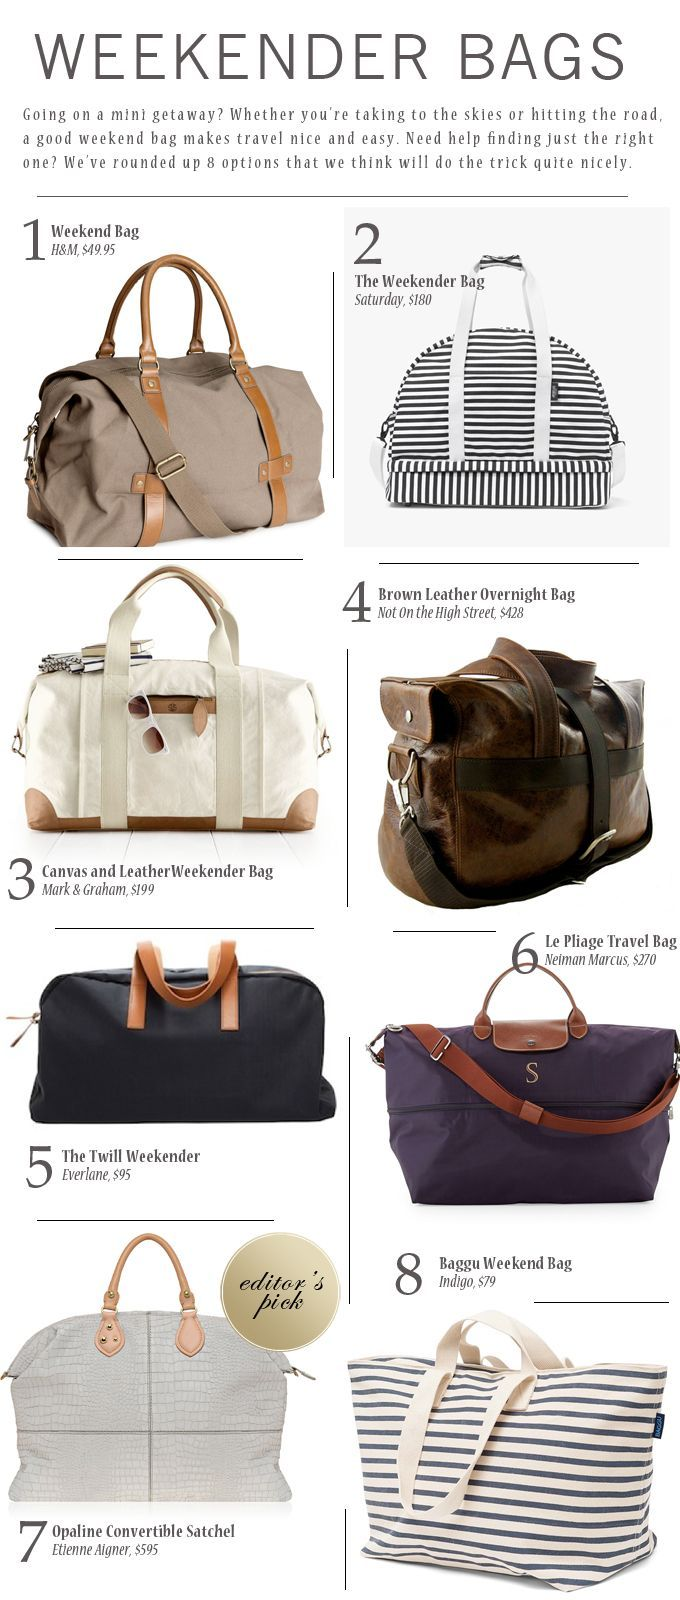 43c8537aa913 8 weekend bags | Advice for College Students | Bags, Purses, bags ...